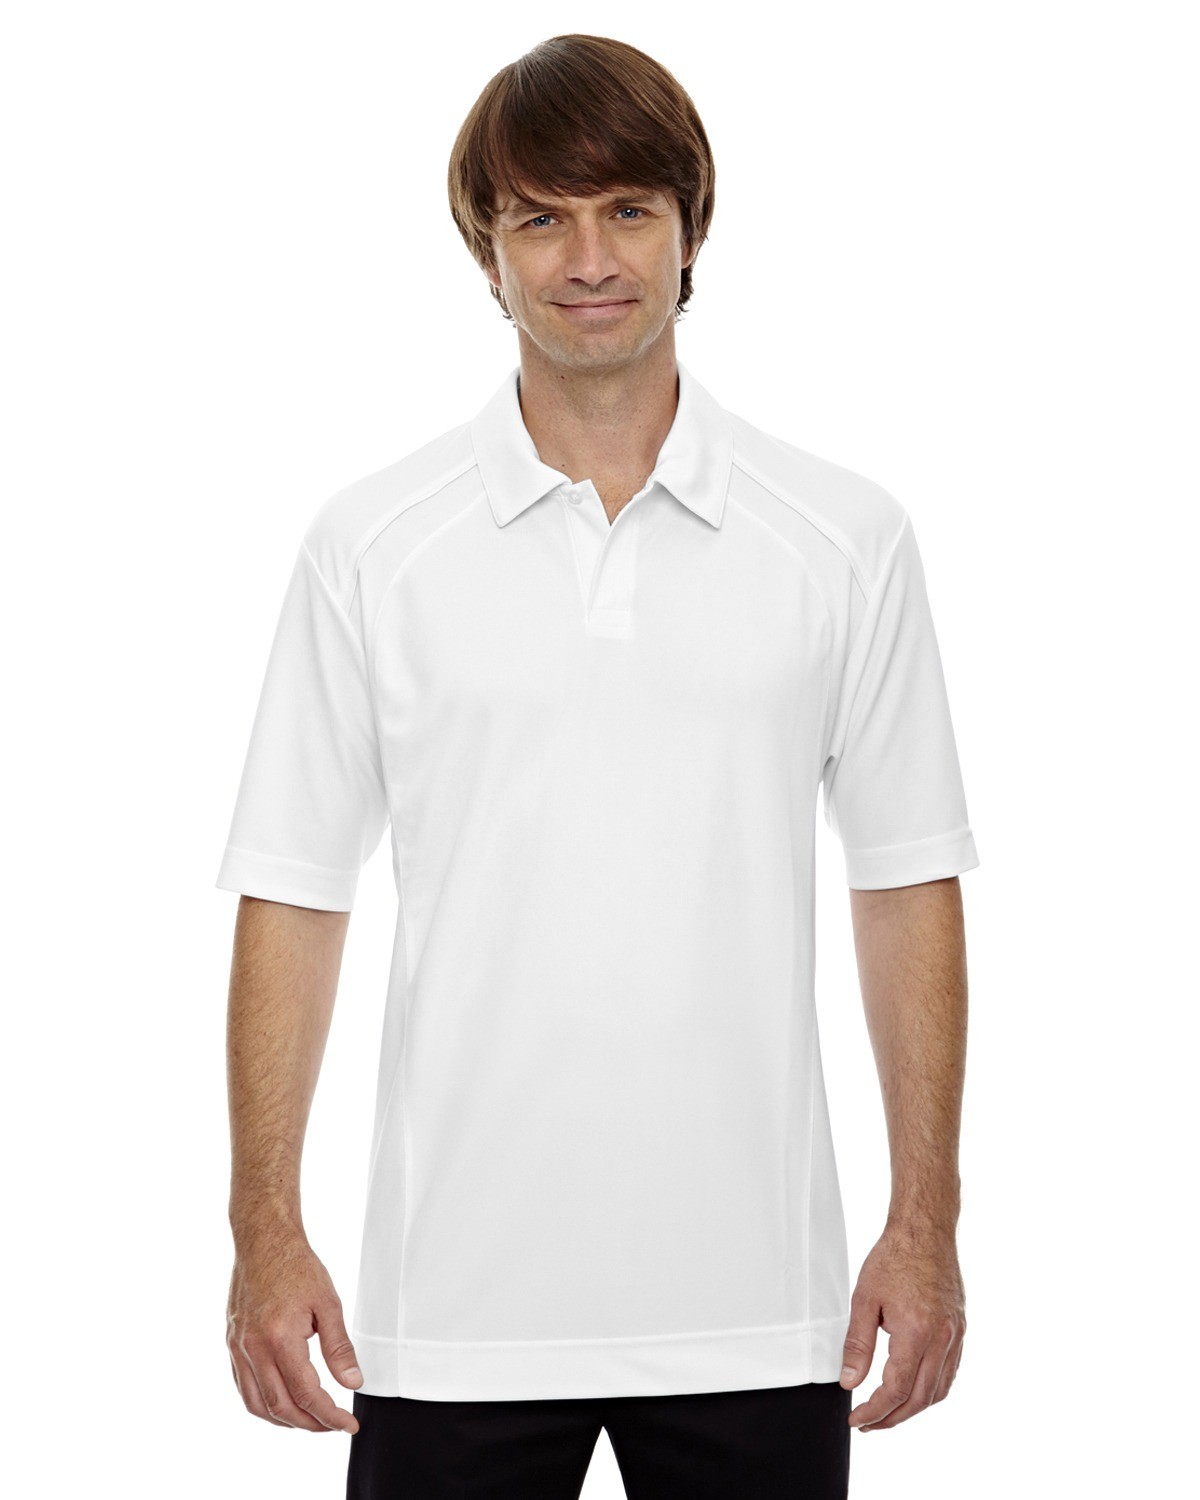 Men's Recycled Polyester Performance Piqué Polo